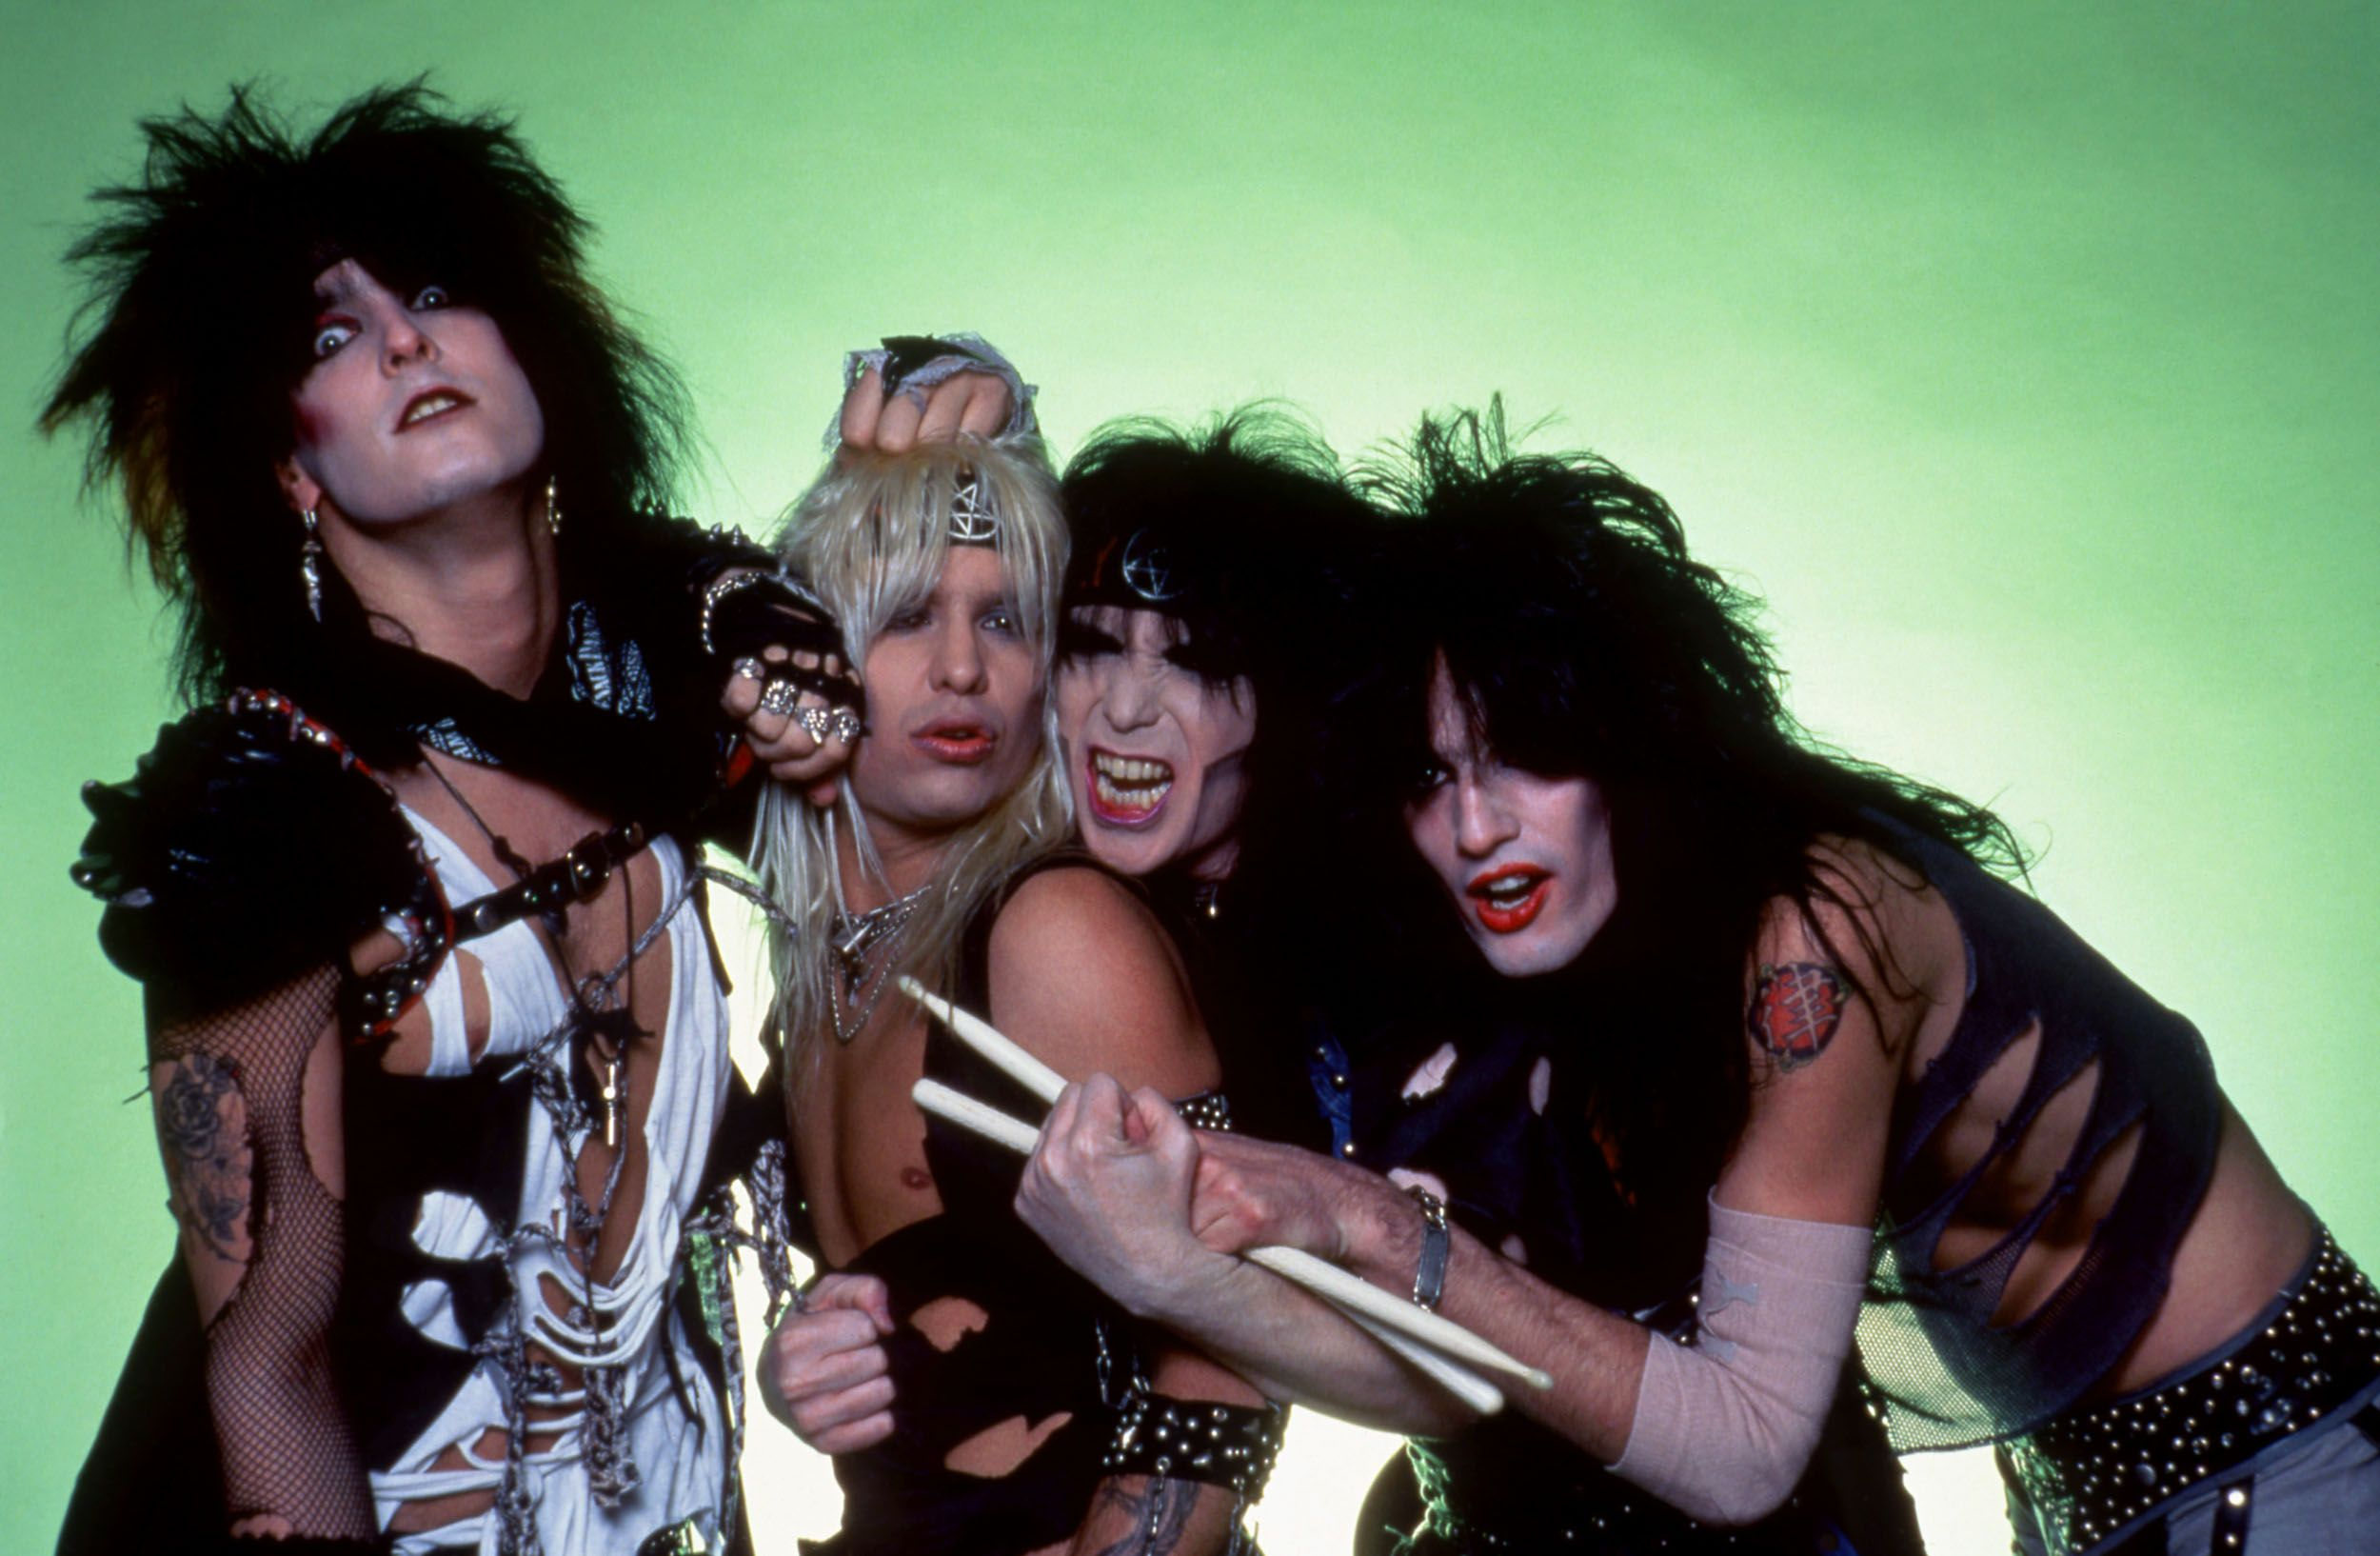 Mötley Crüe pose for a studio portrait during Ozzy Osbourne's Bark at the Moon Tour on March 6, 1984 at Joe Louis Arena in Detroit, Michigan.